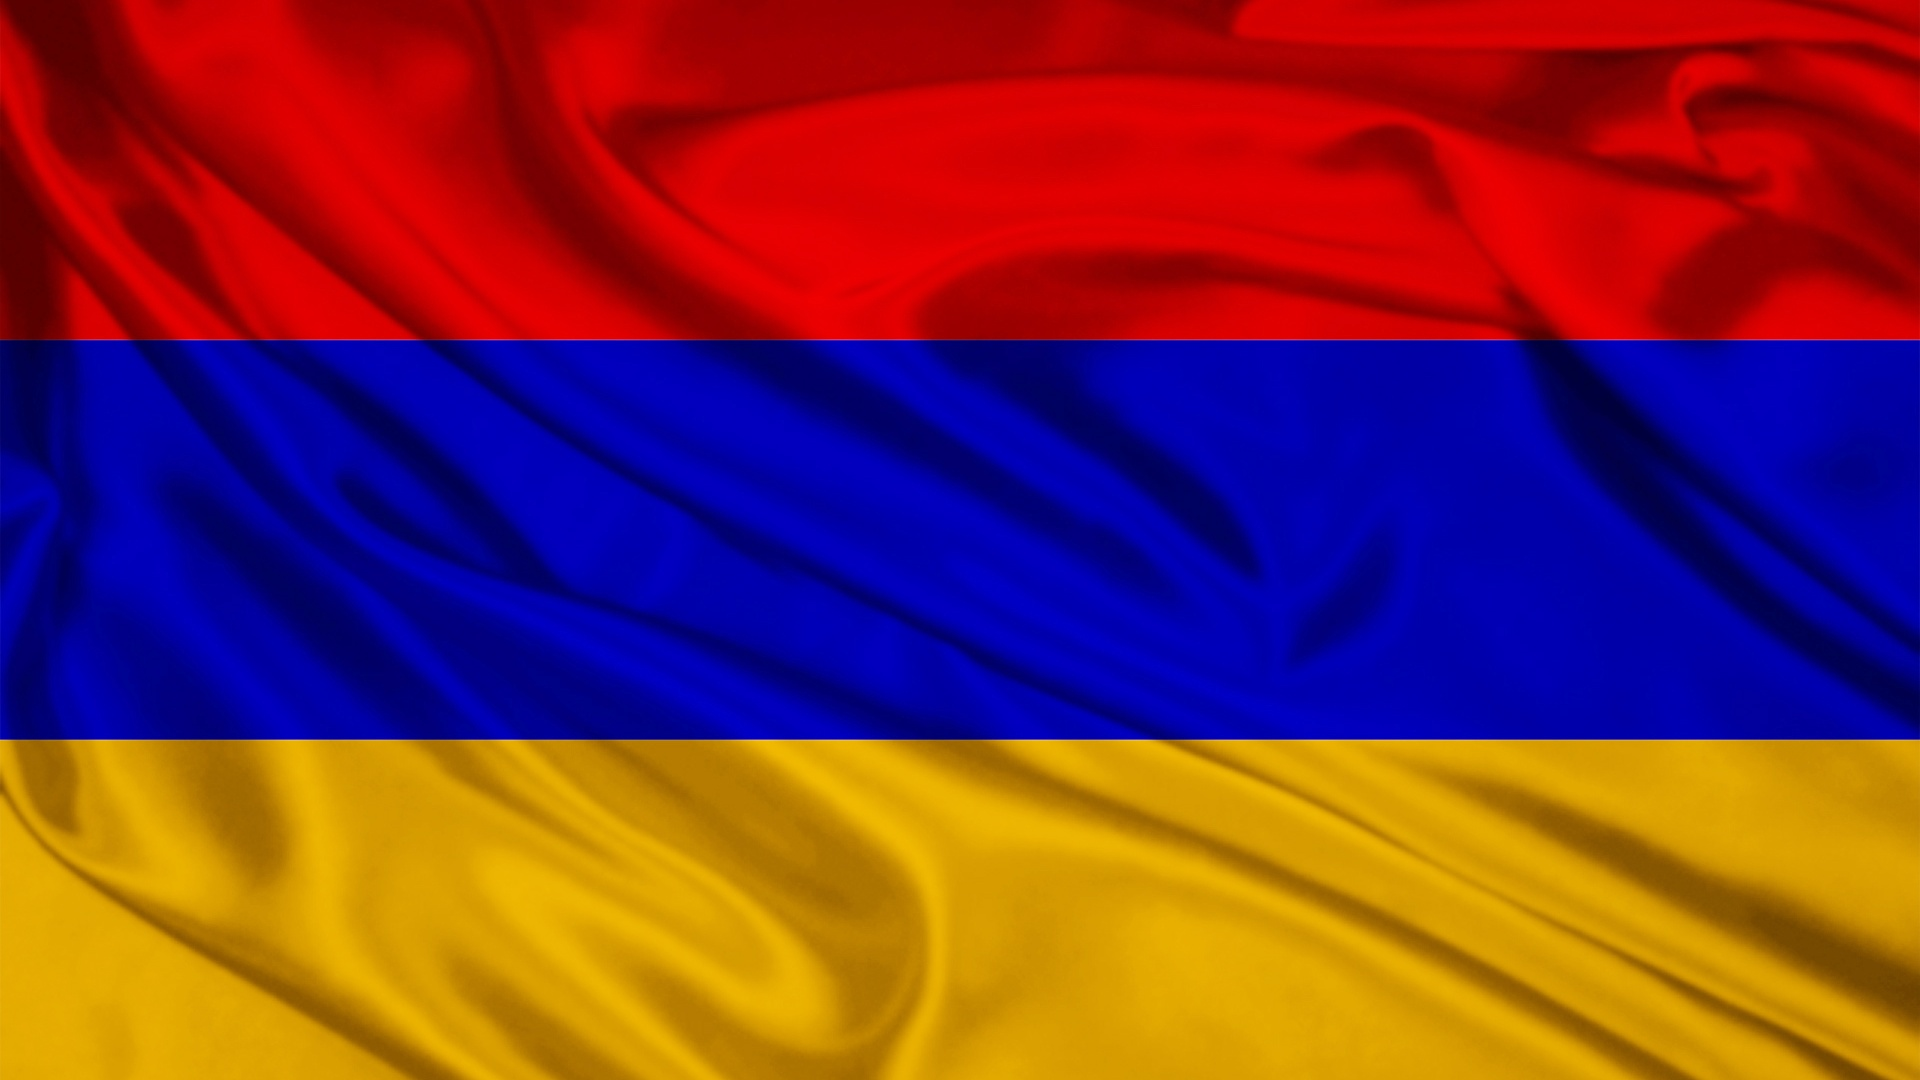 National Flag Of Armenia A Symbol Of Courage And Hope